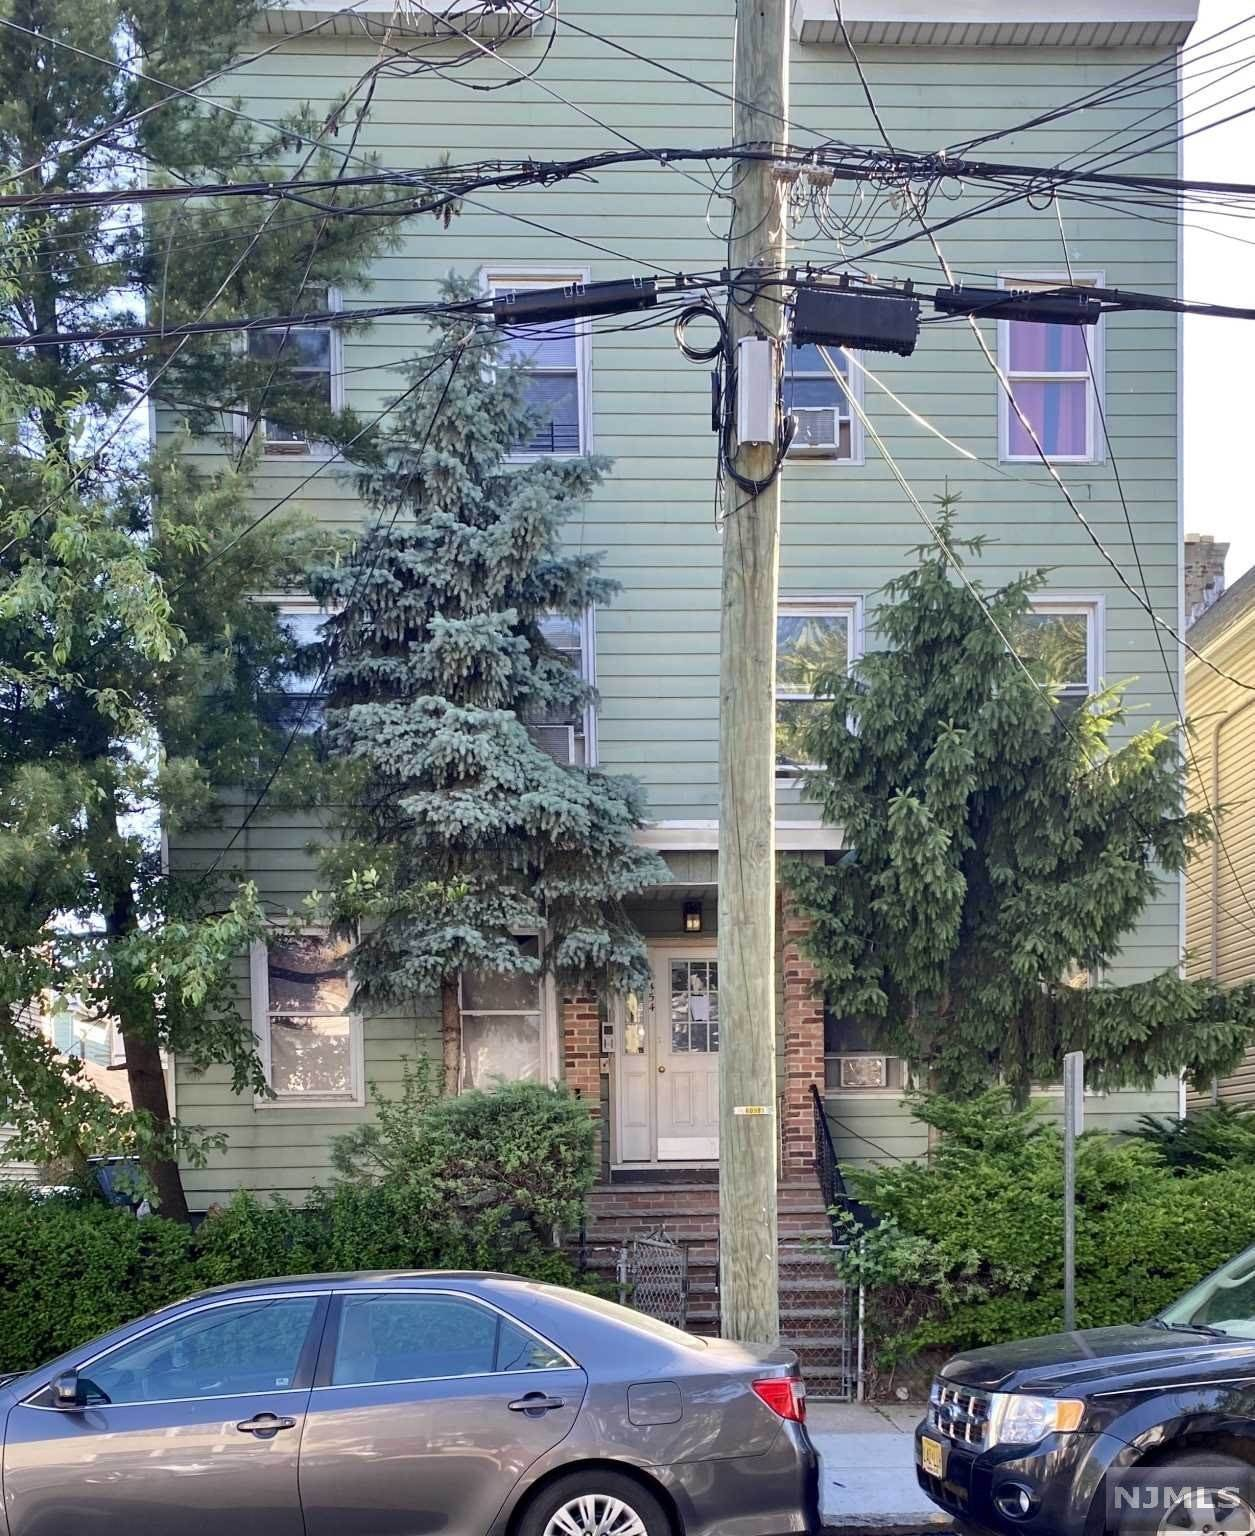 Commercial / Office for Sale at 452-454 Franklin Street Elizabeth, New Jersey,07206 United States